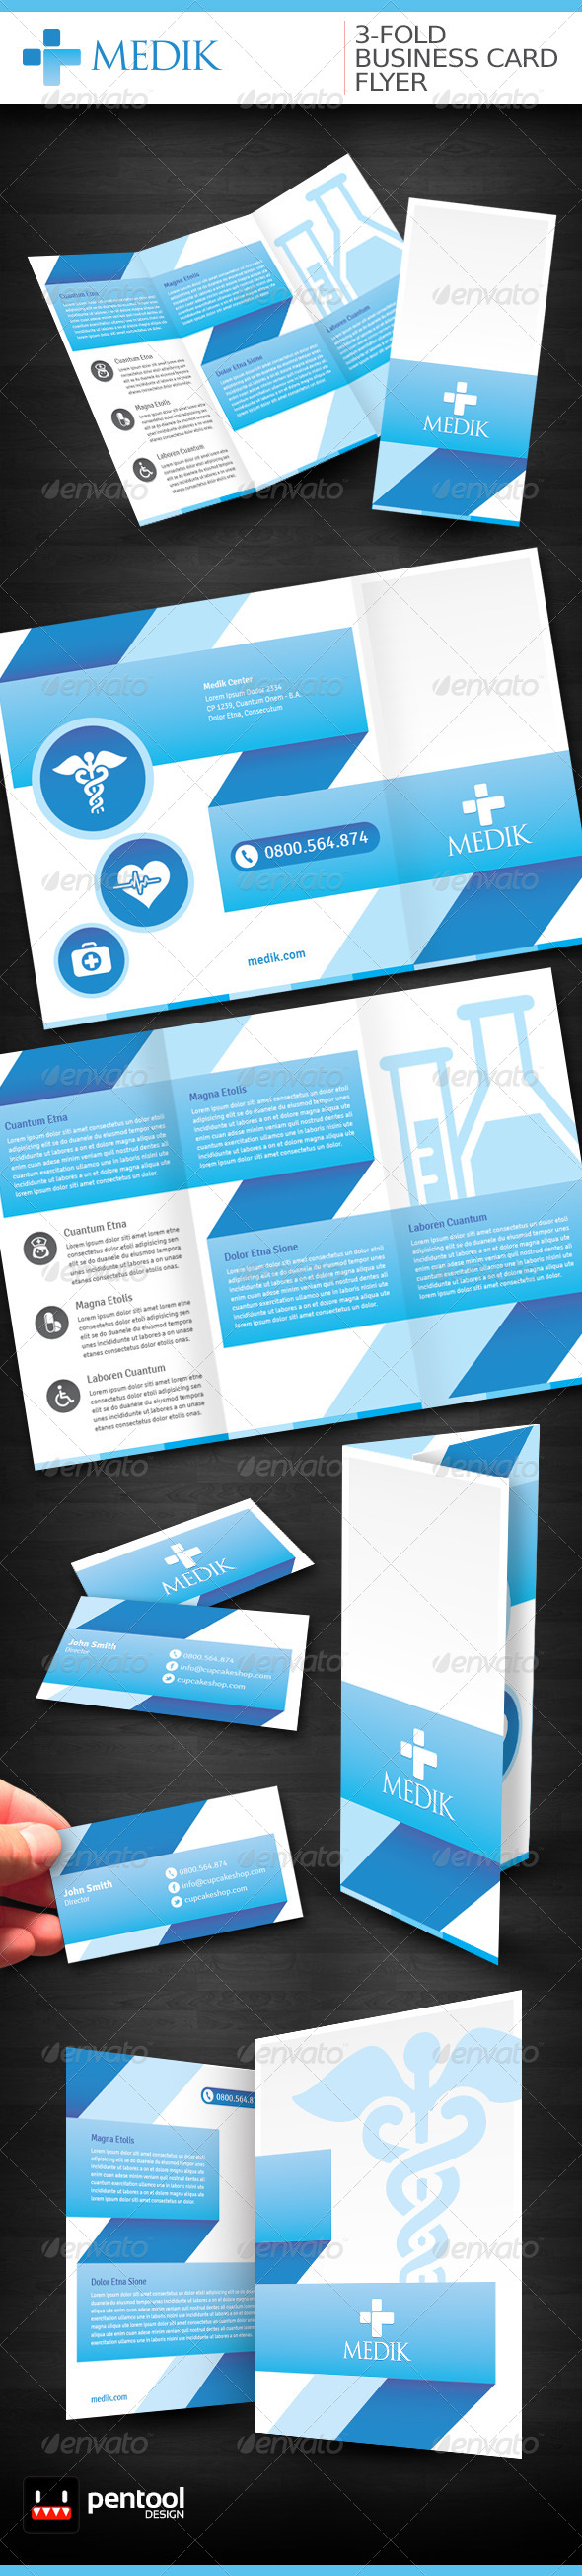 GraphicRiver Medik 3-Fold Business Card Flyer 4340770